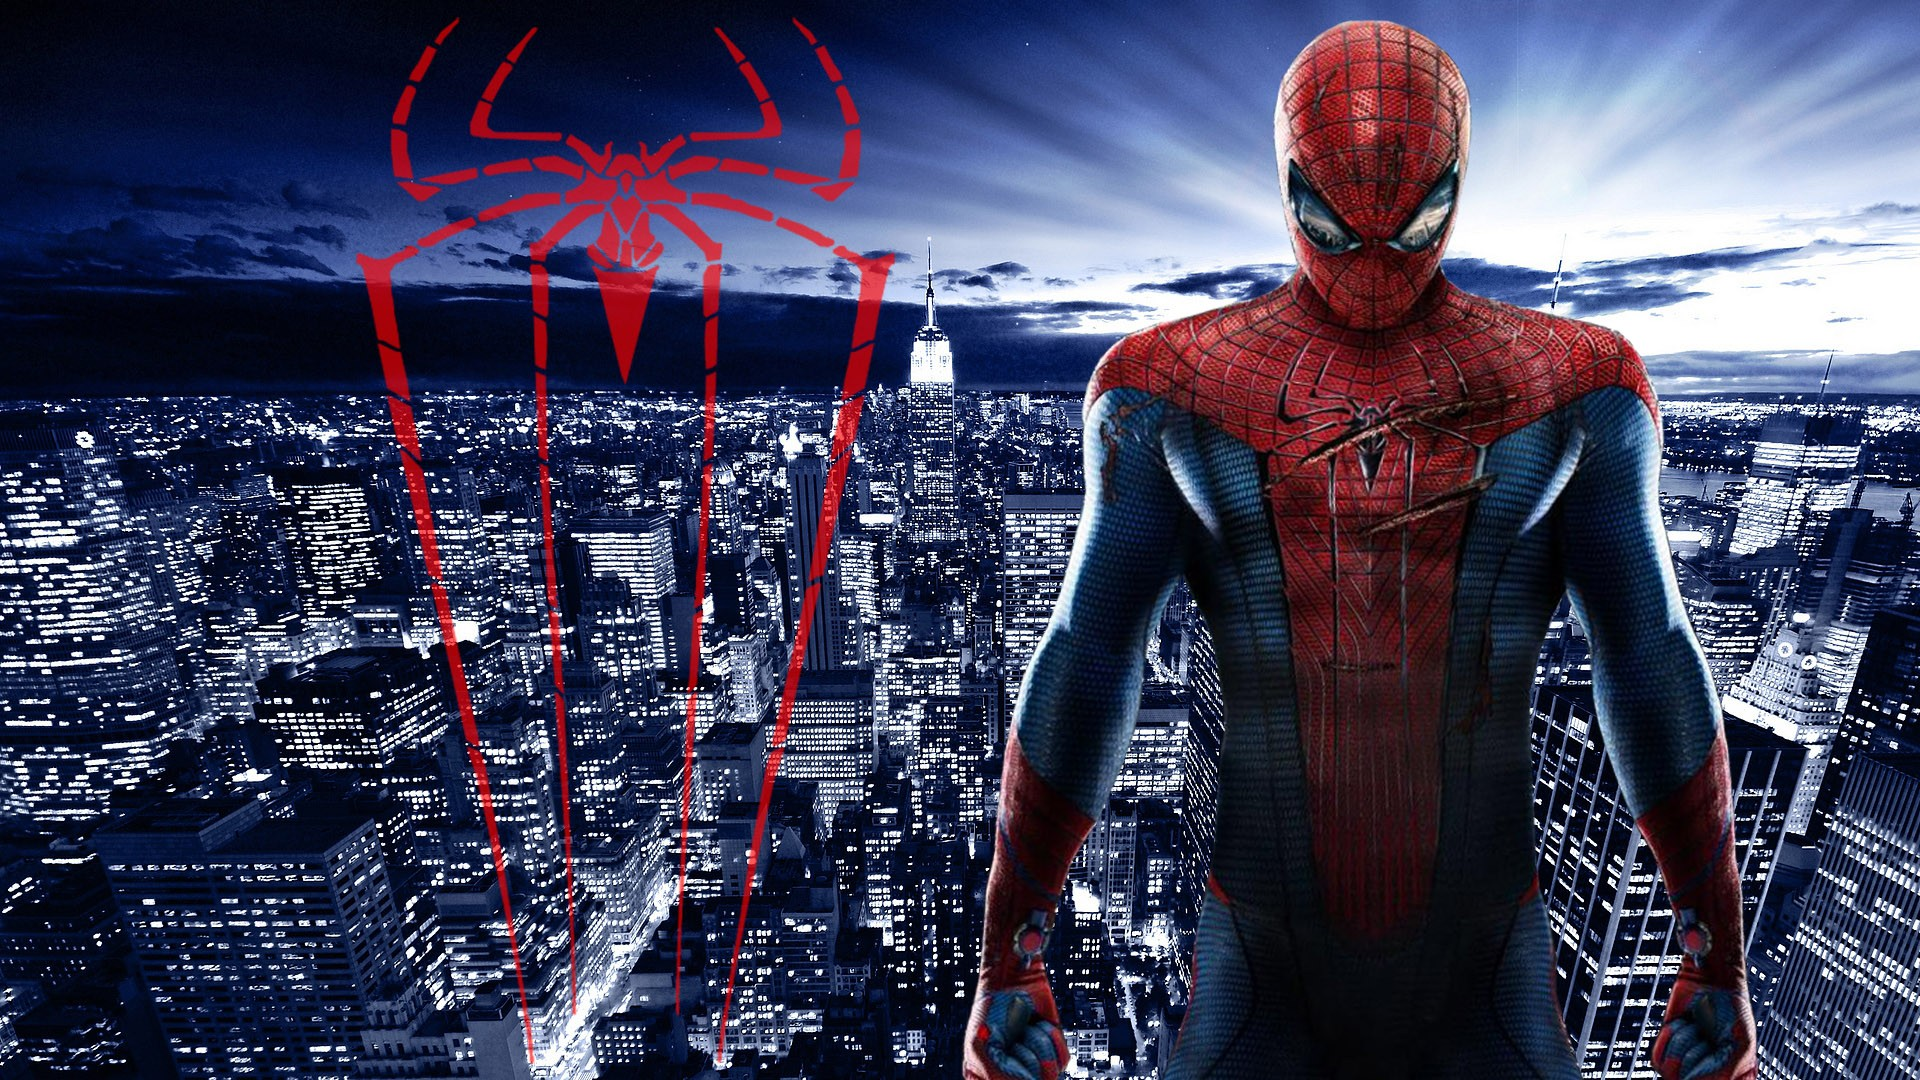 spiderman wallpaper hd 183�� download free hd wallpapers for